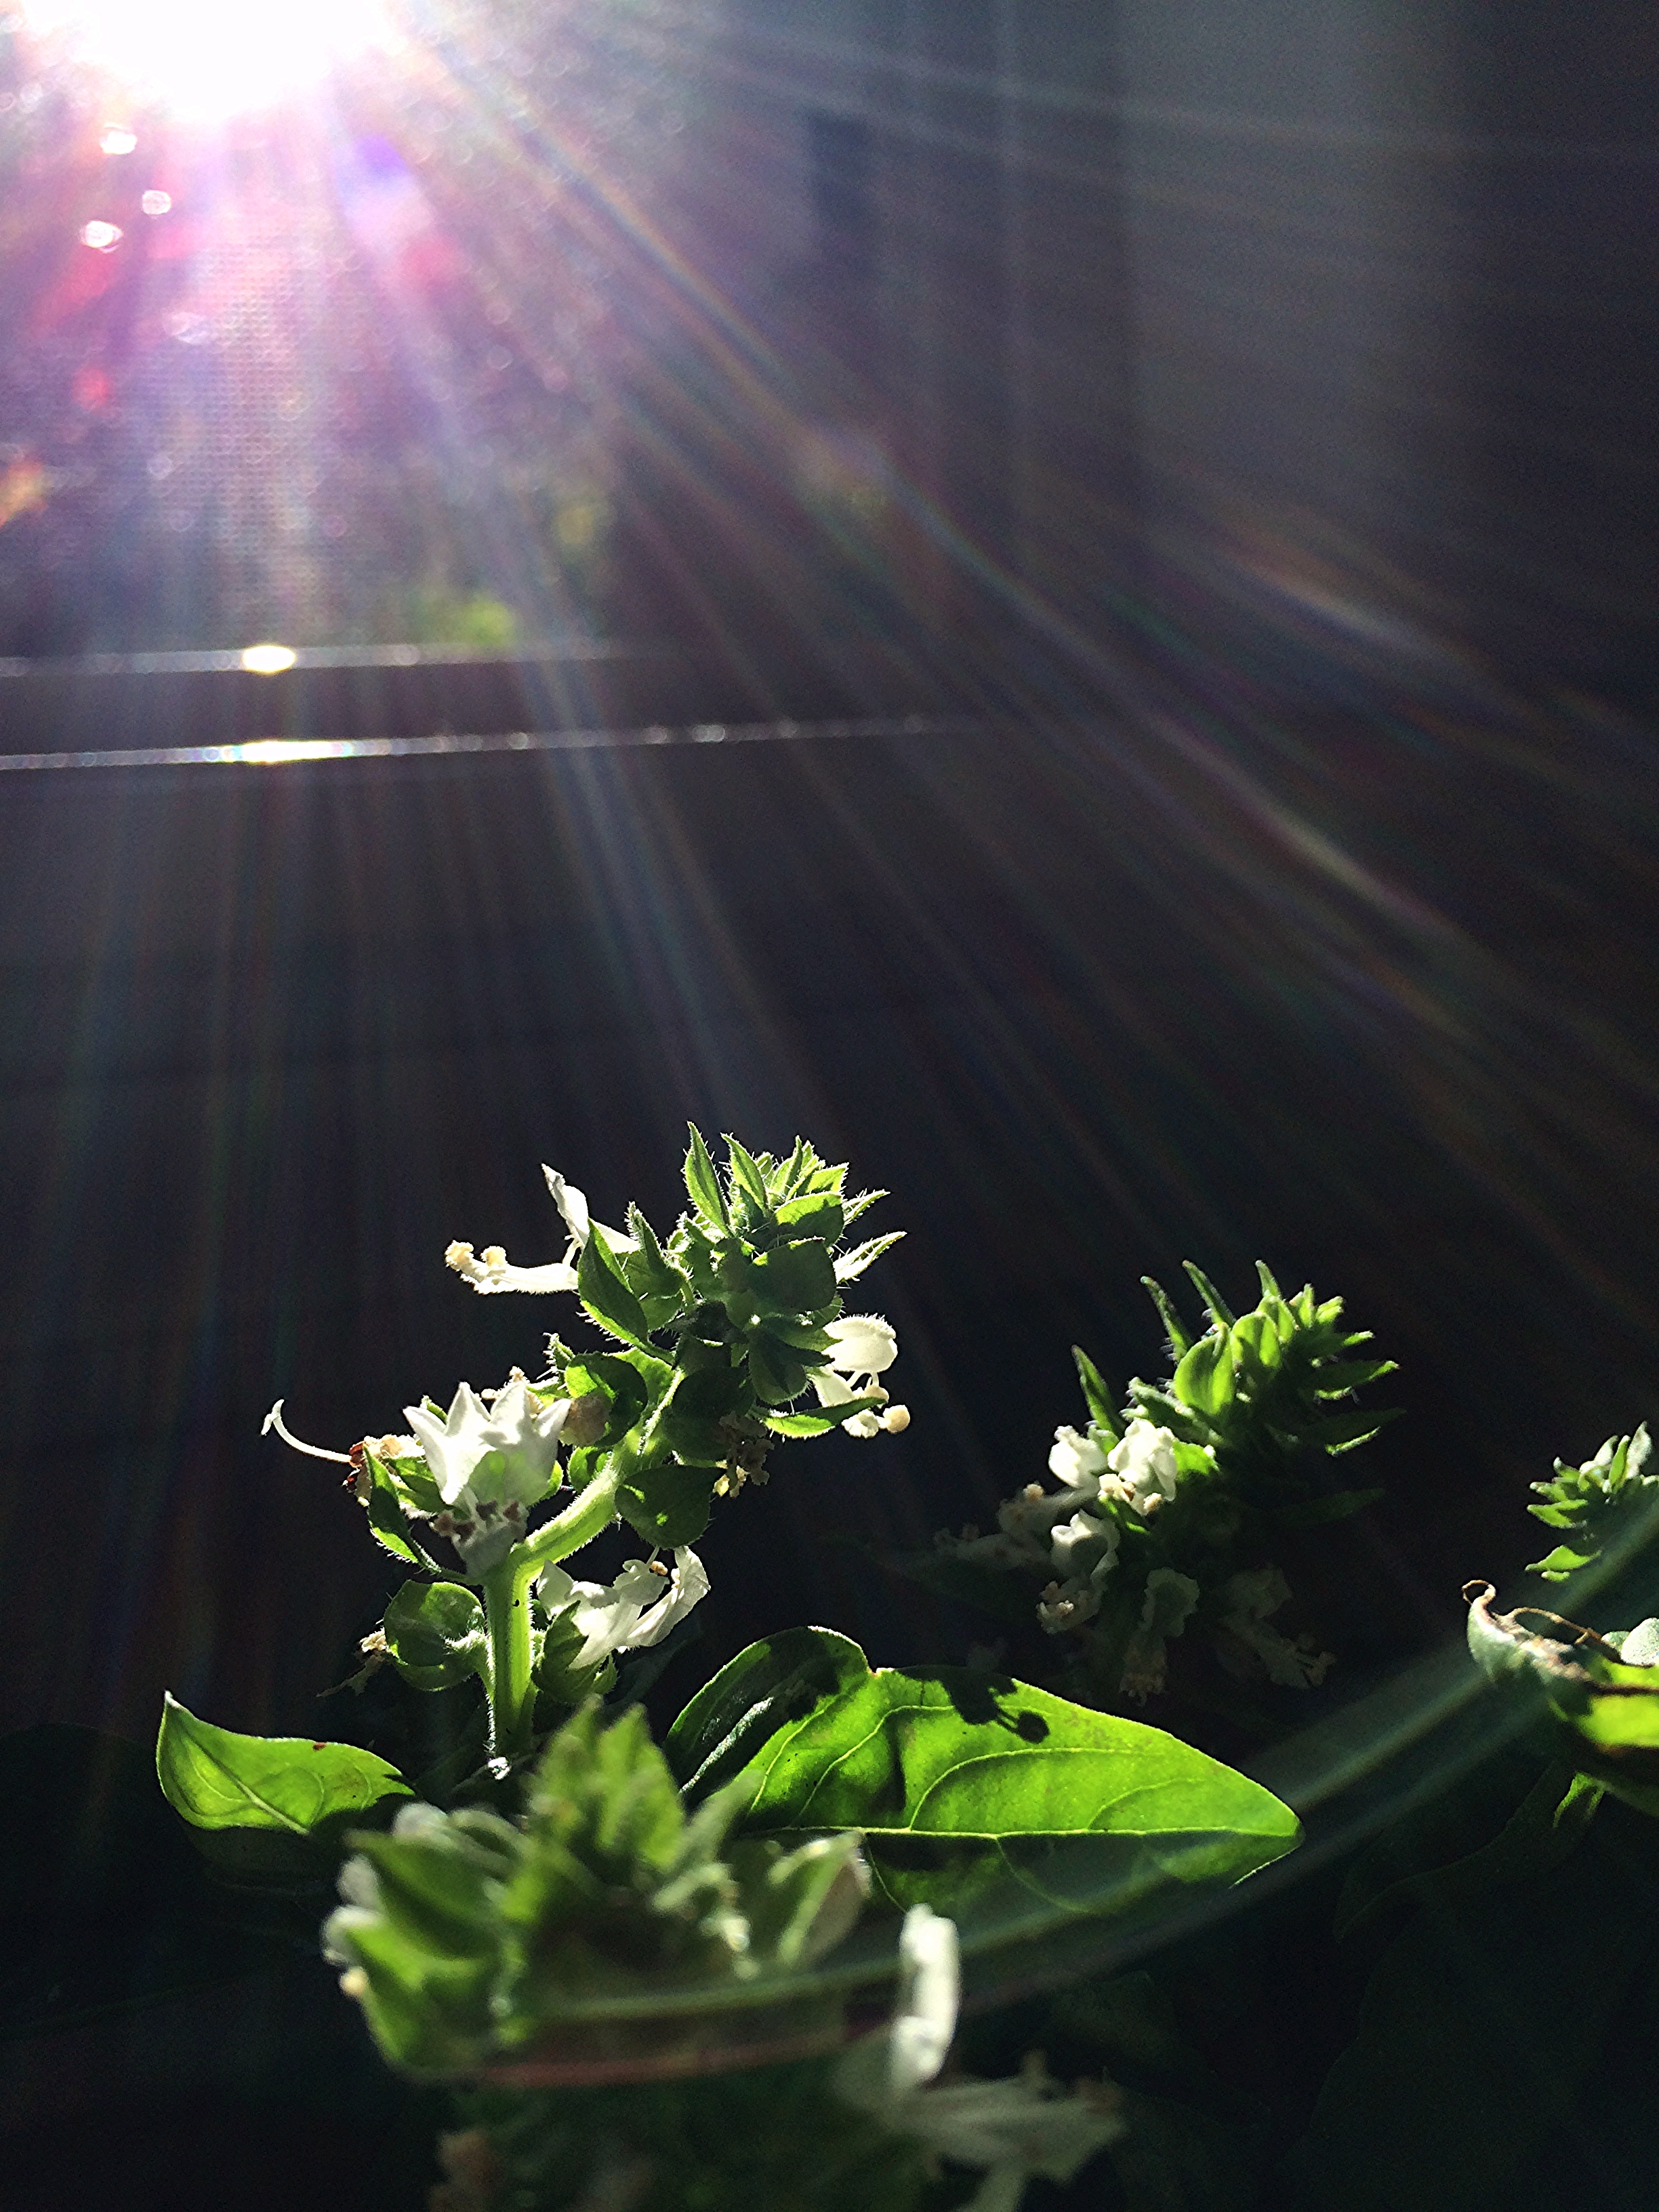 A bunch of basil in a cup of water, begins to flower at the kitchen sink.